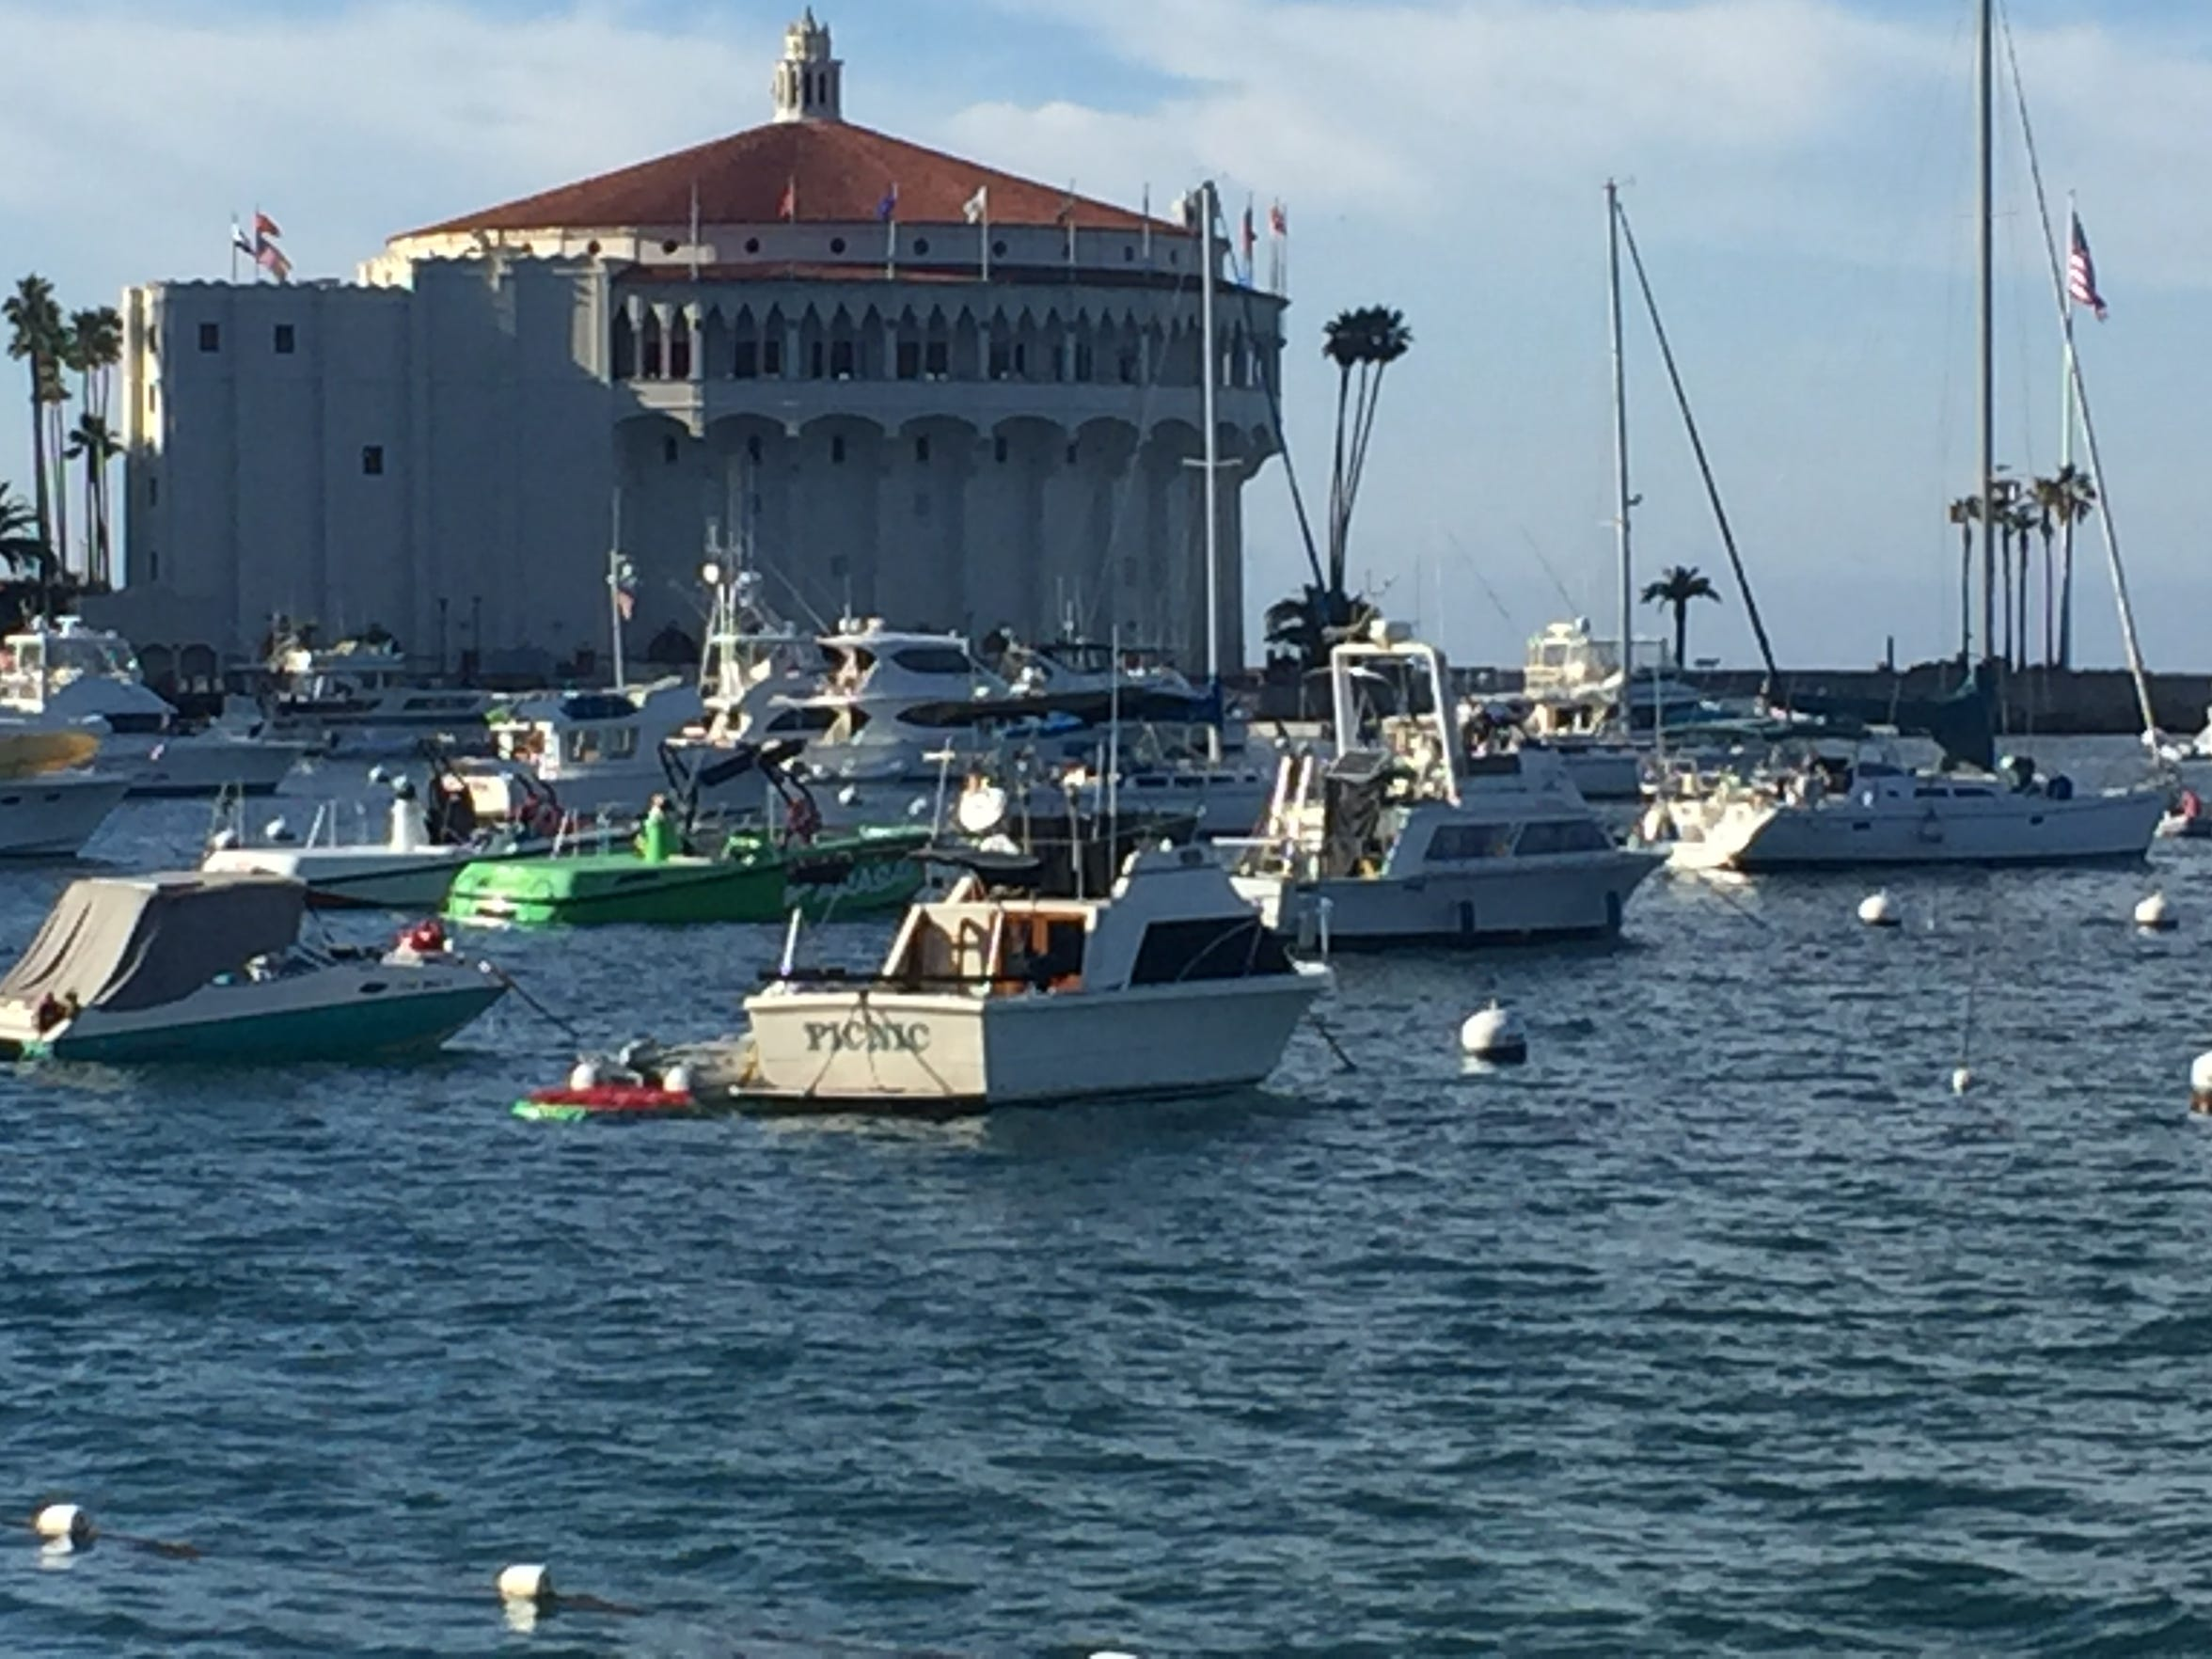 The Avalon Casino remains an iconic symbol of Catalina